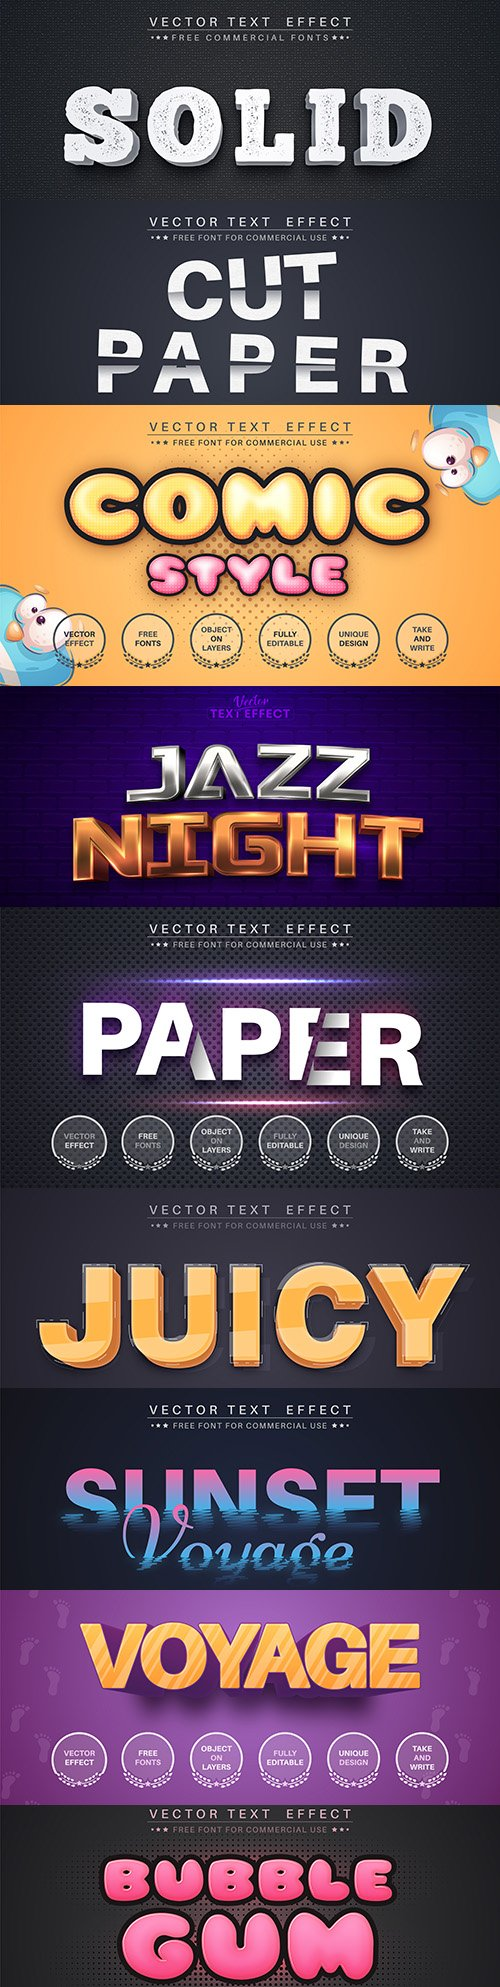 Editable font and 3d effect text design collection illustration 25